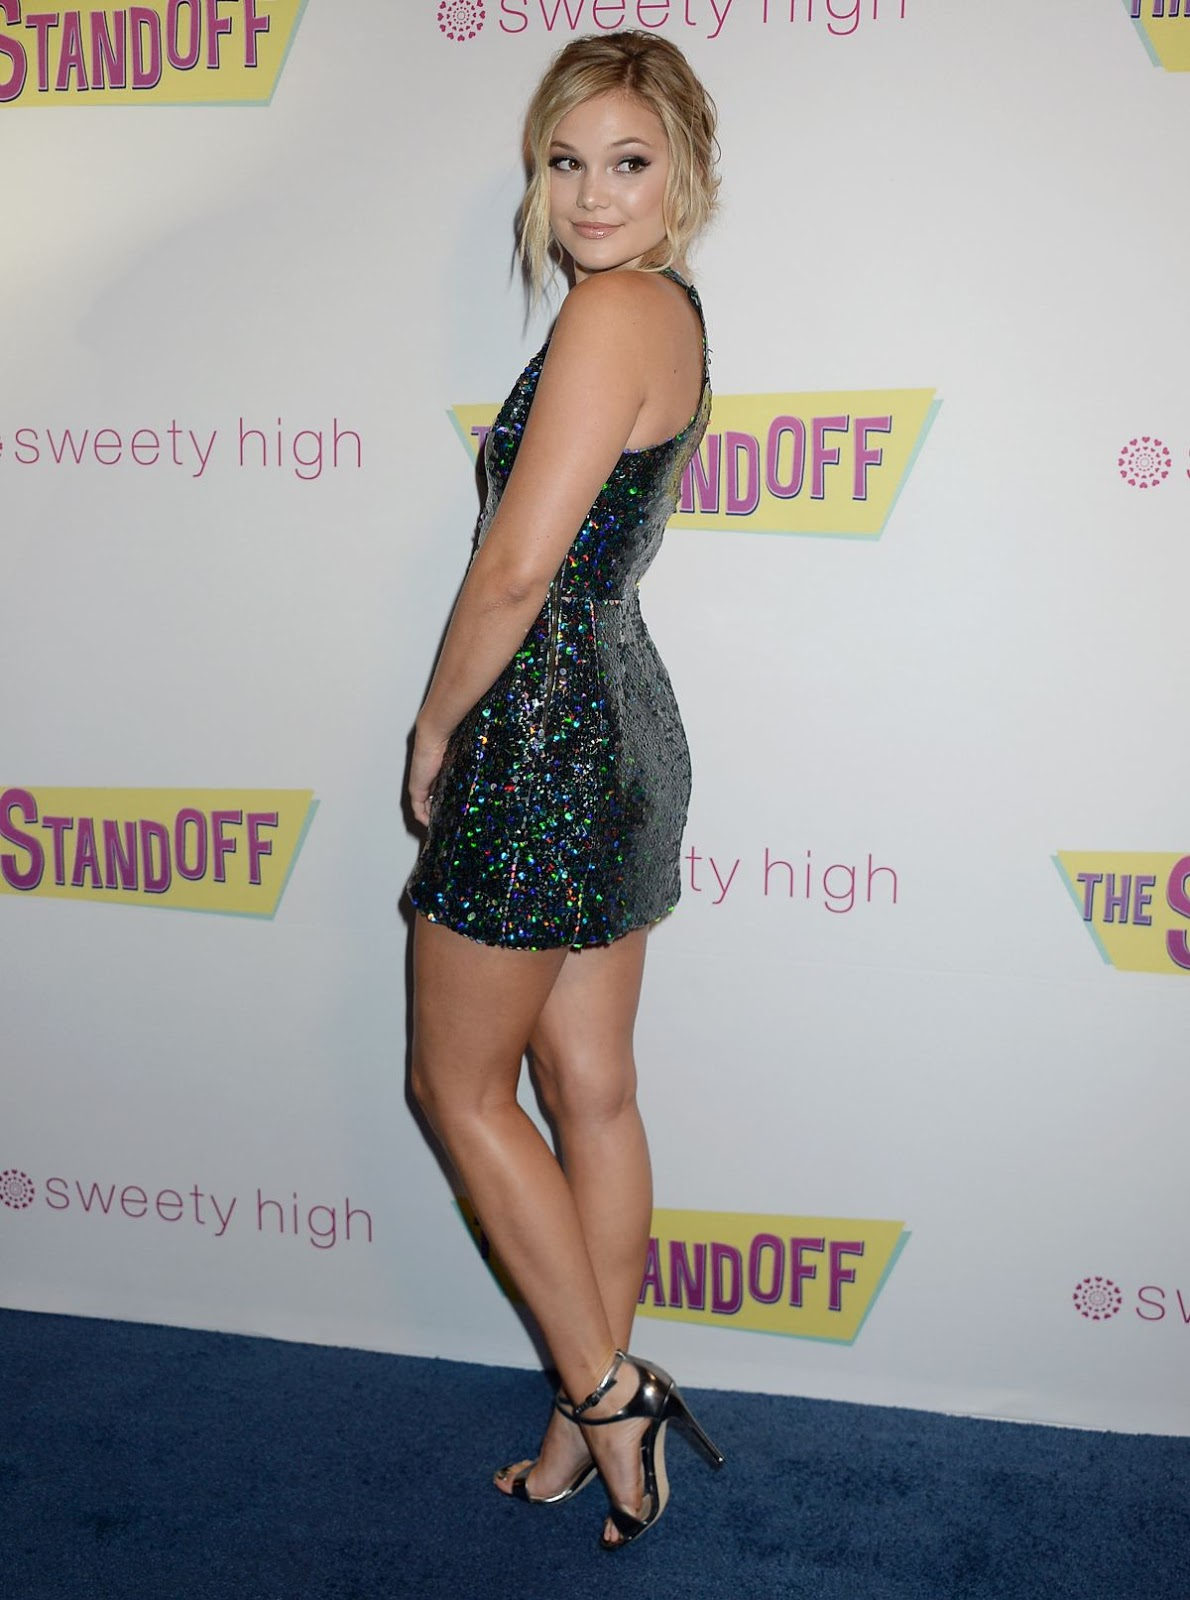 HD Photos of Olivia Holt At The Standoff Premiere In Los Angeles